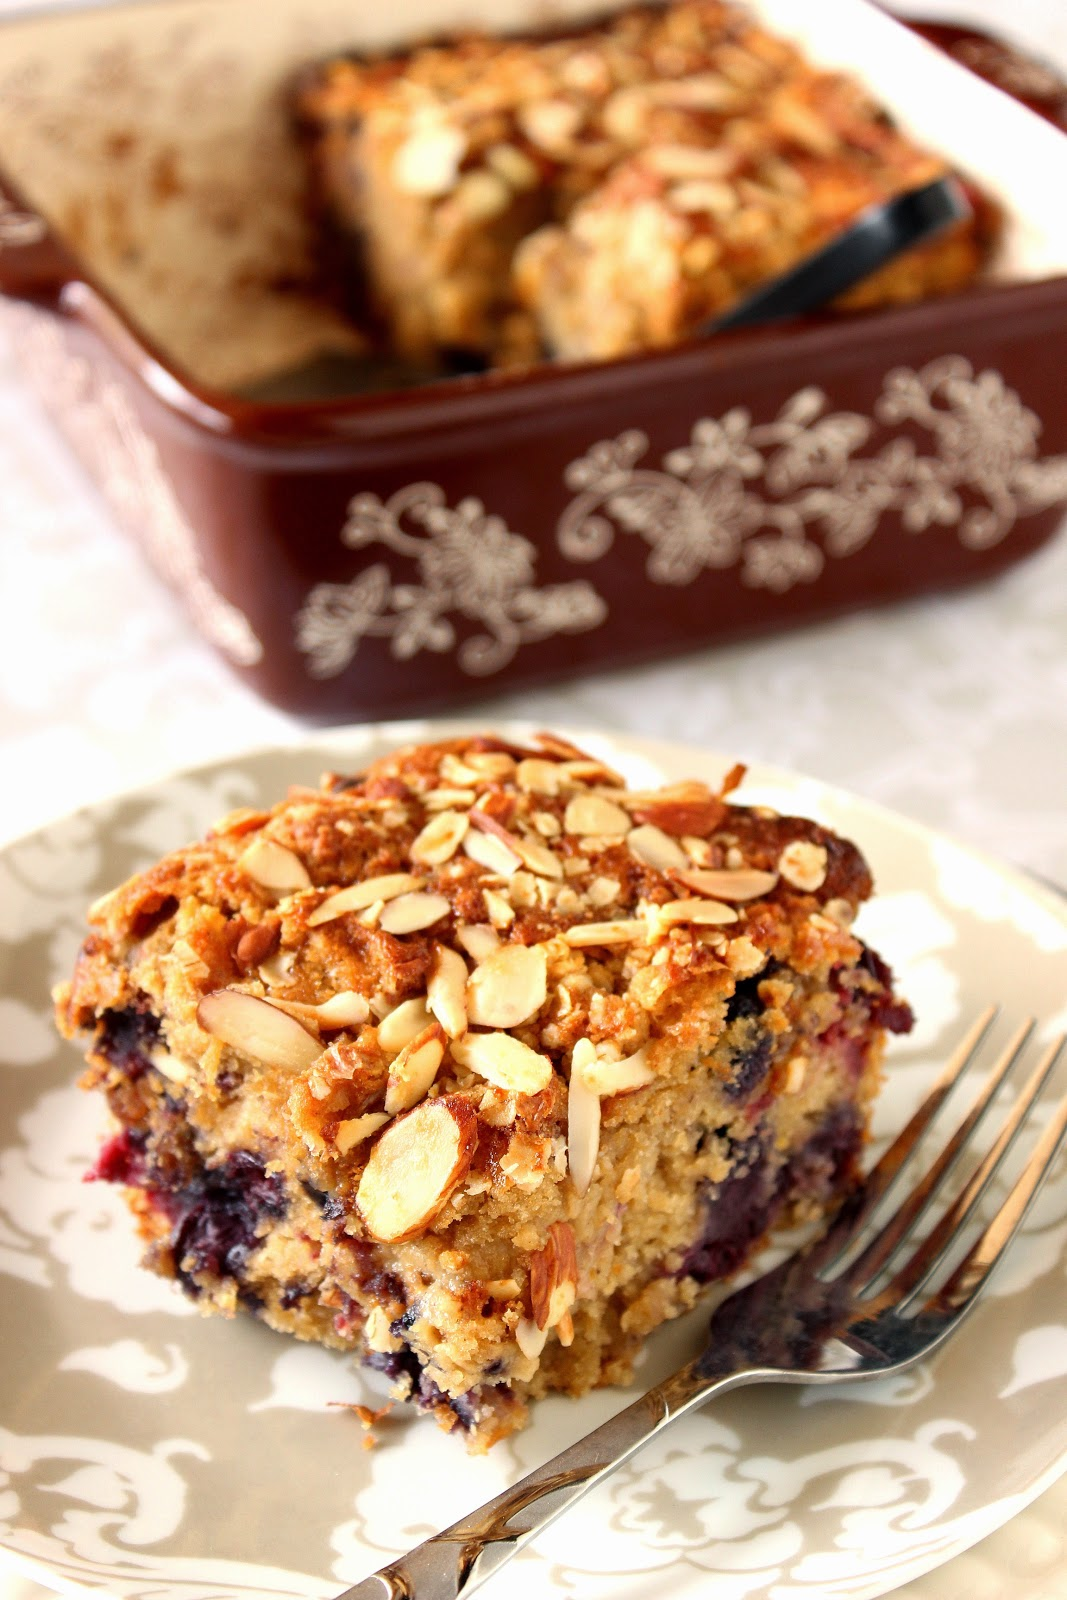 Mixed Berry and Almond Oatmeal Coffeecake